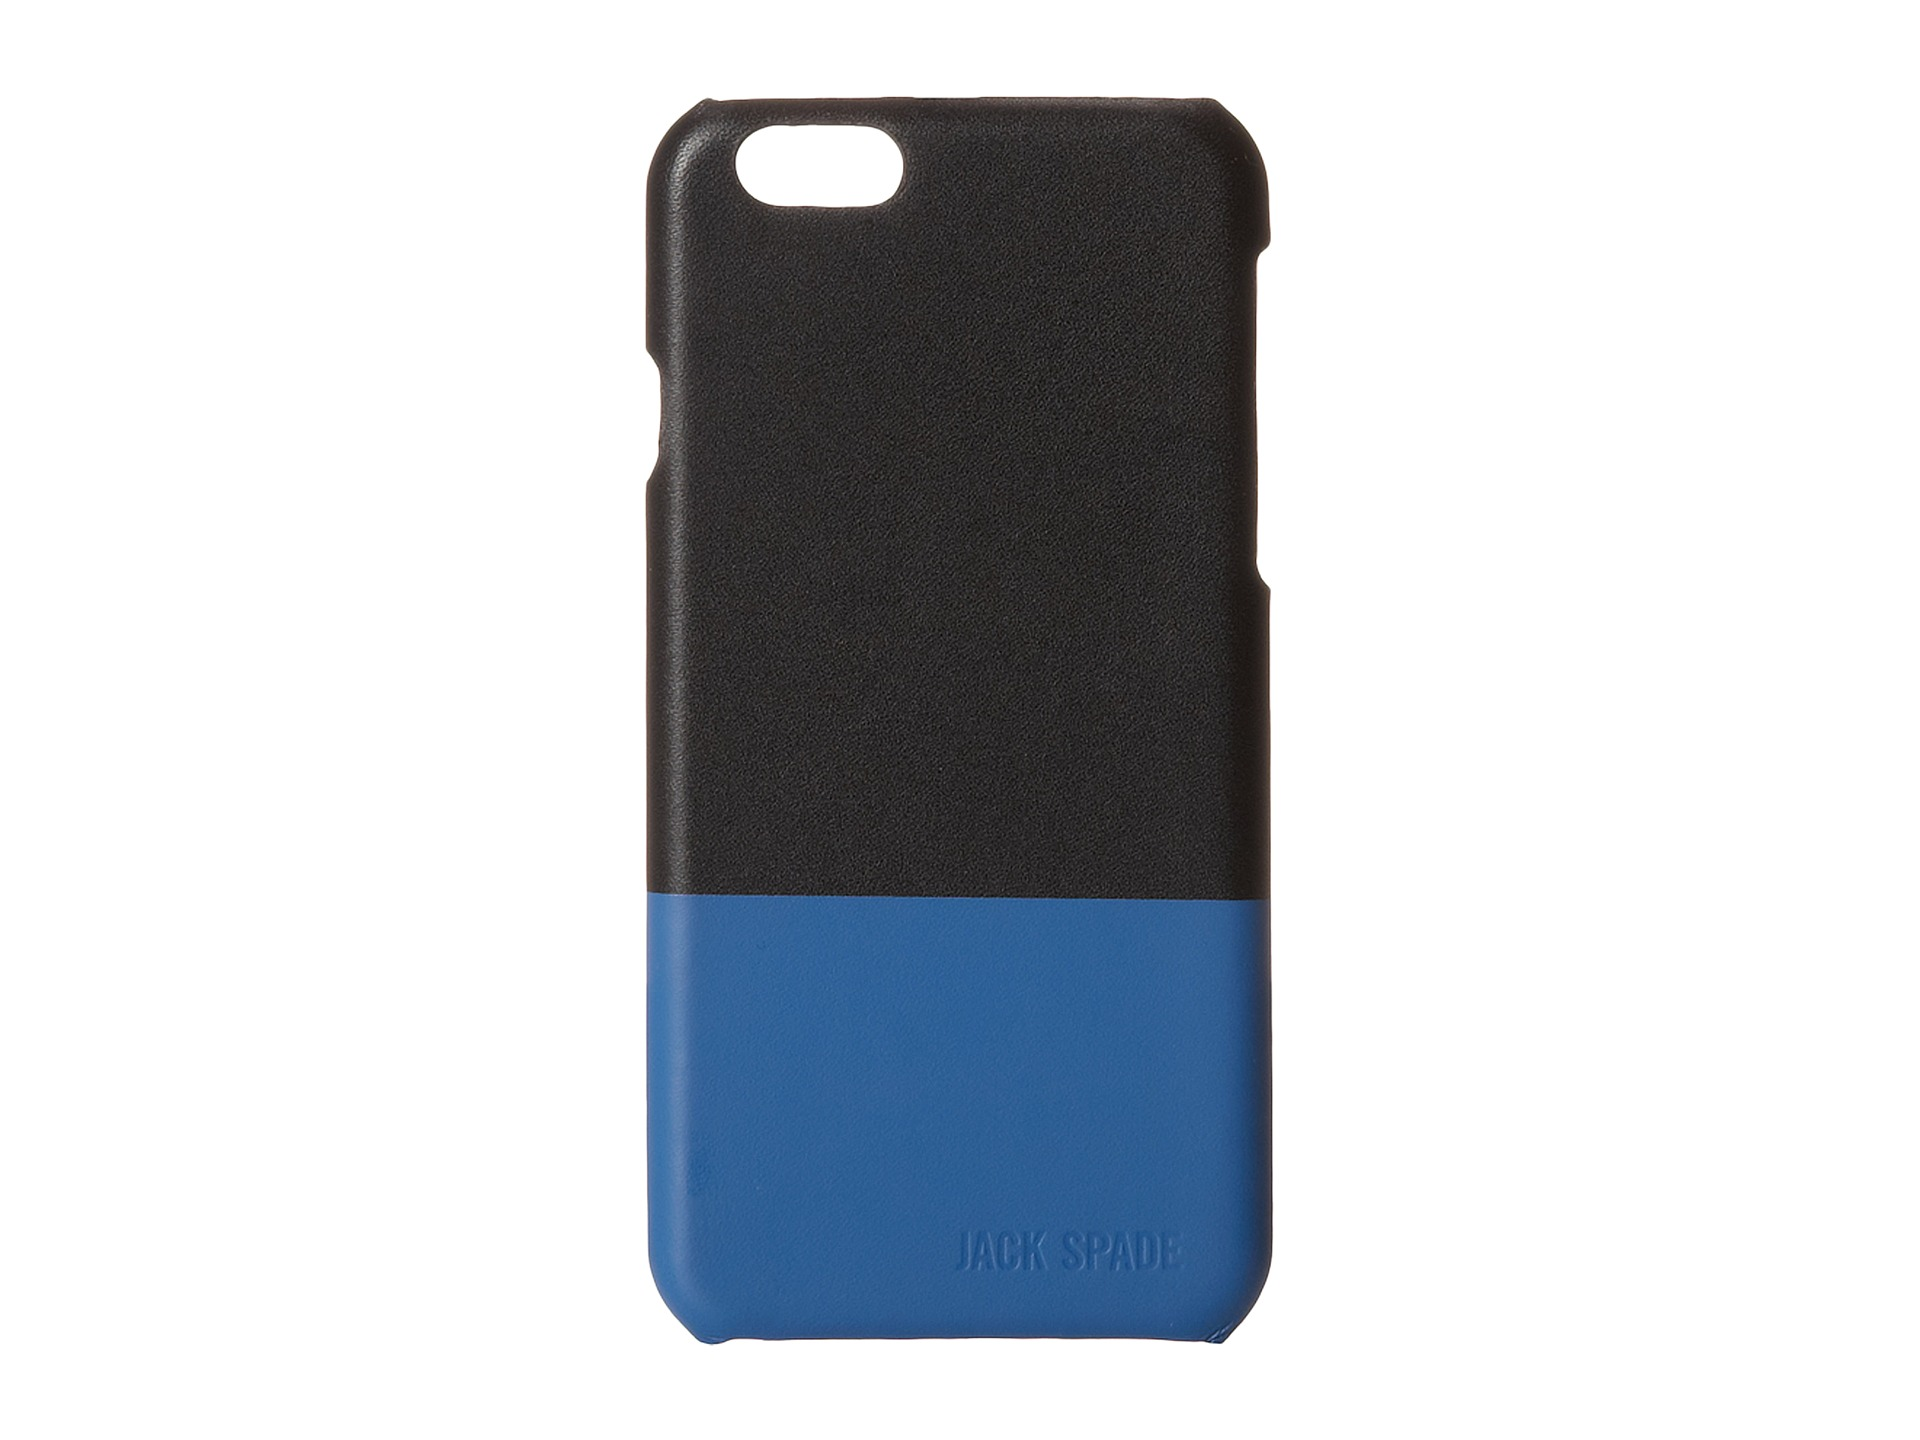 jack spade iphone case spade dipped leather for iphone 6 black blue 15588